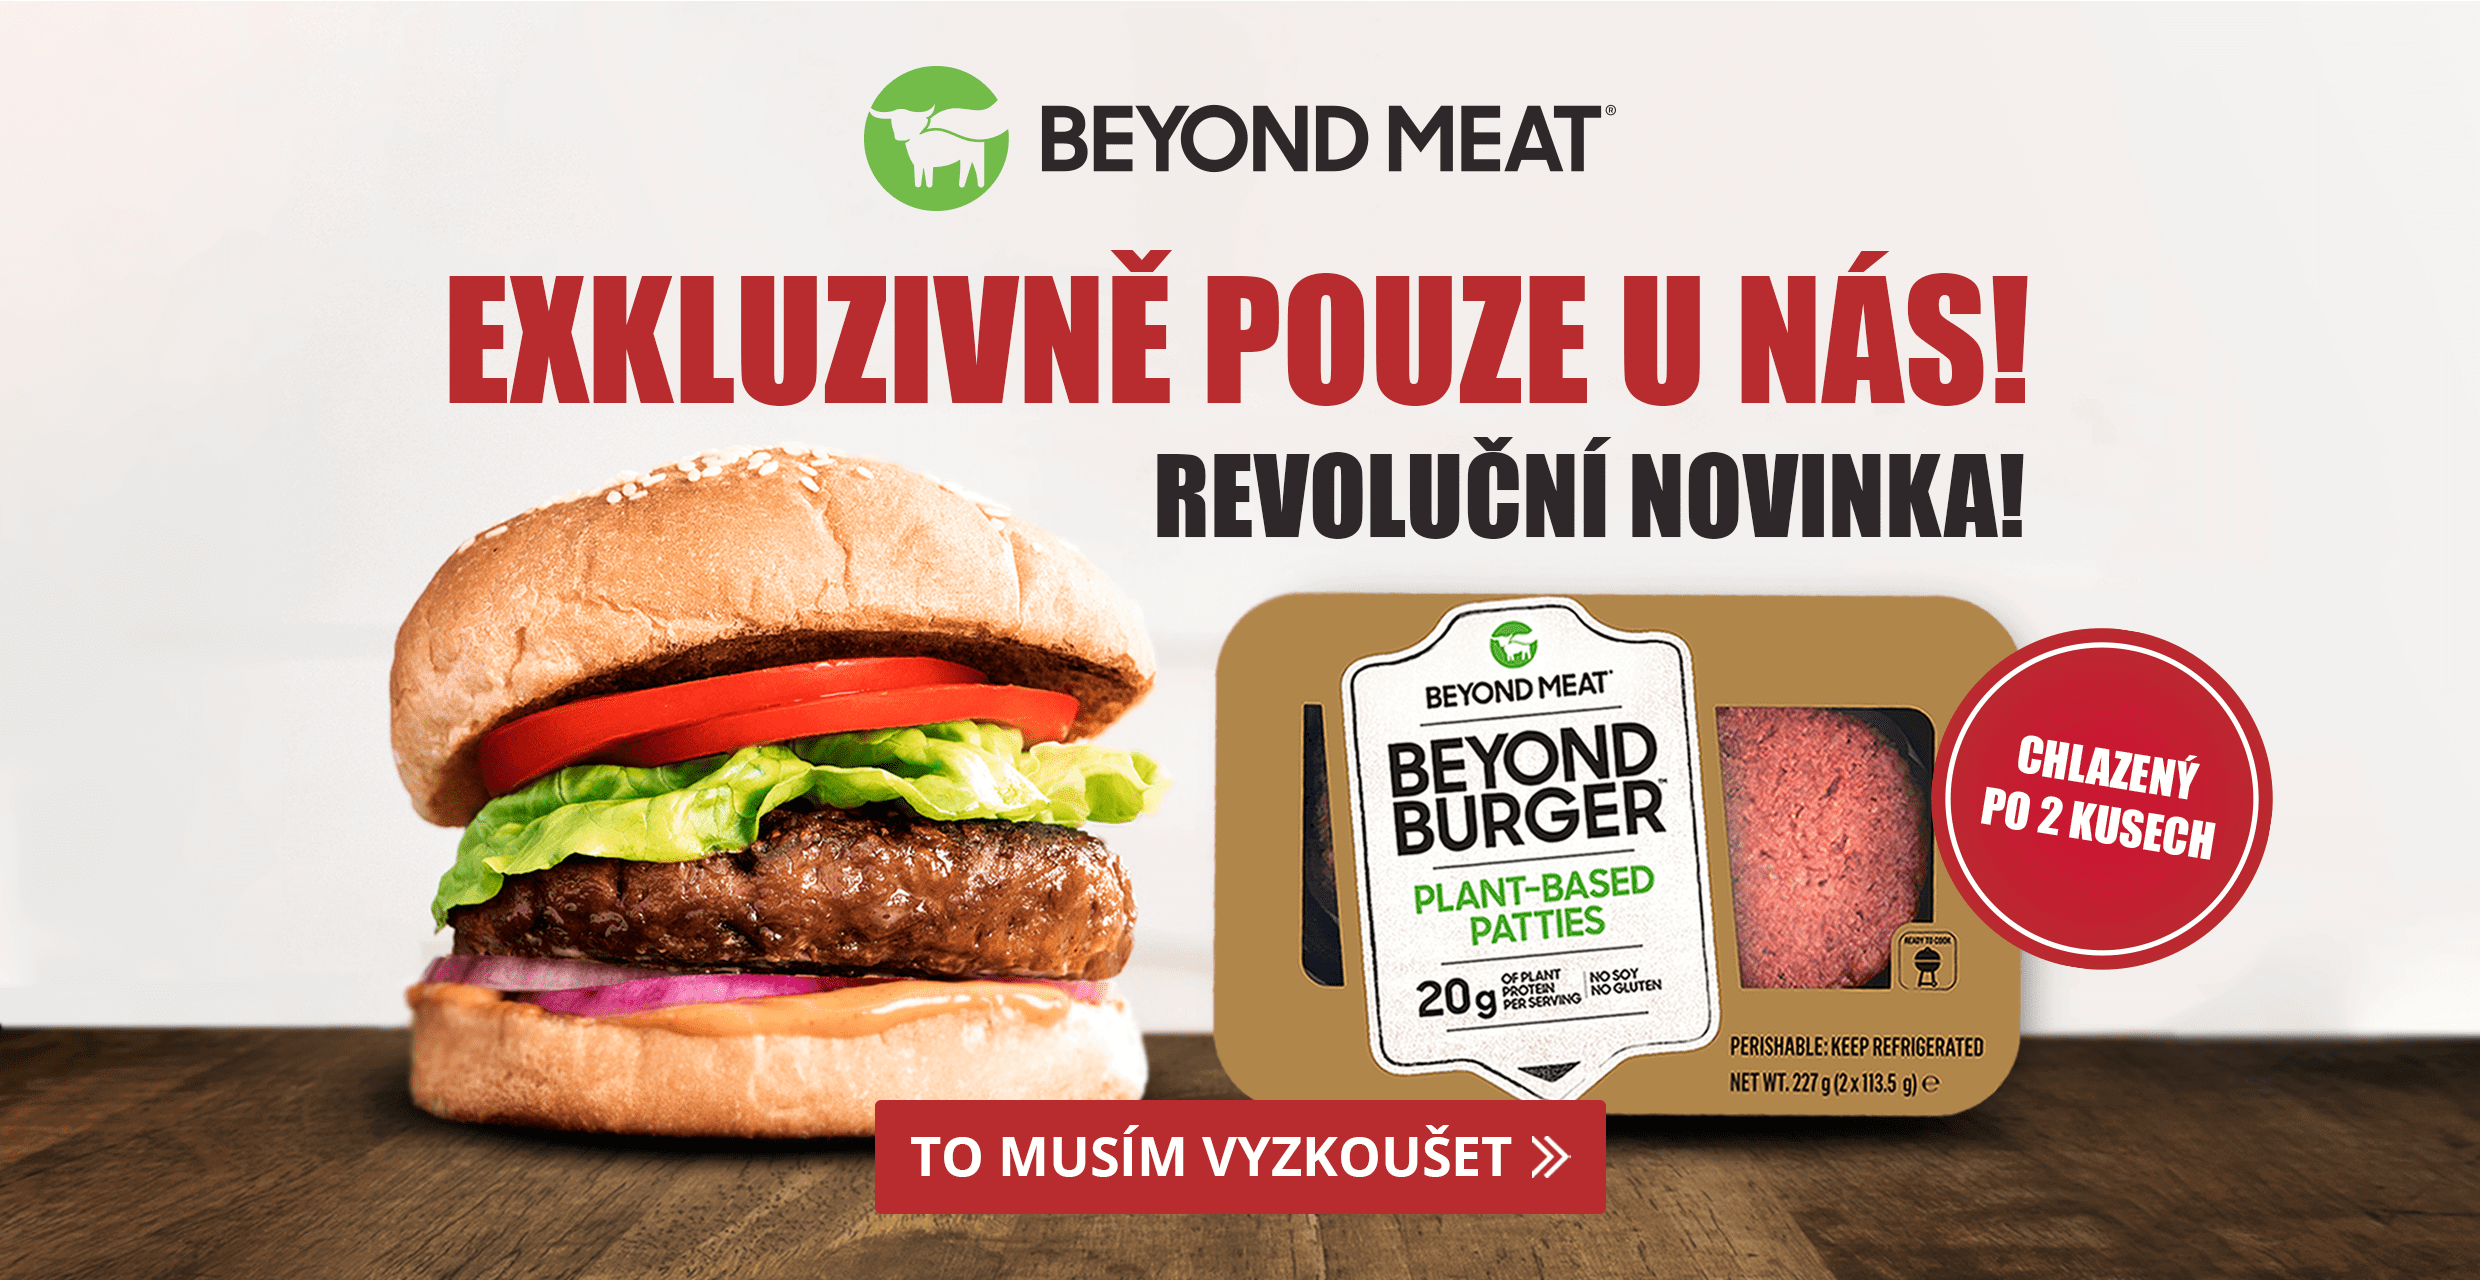 Beyond Meat Burger